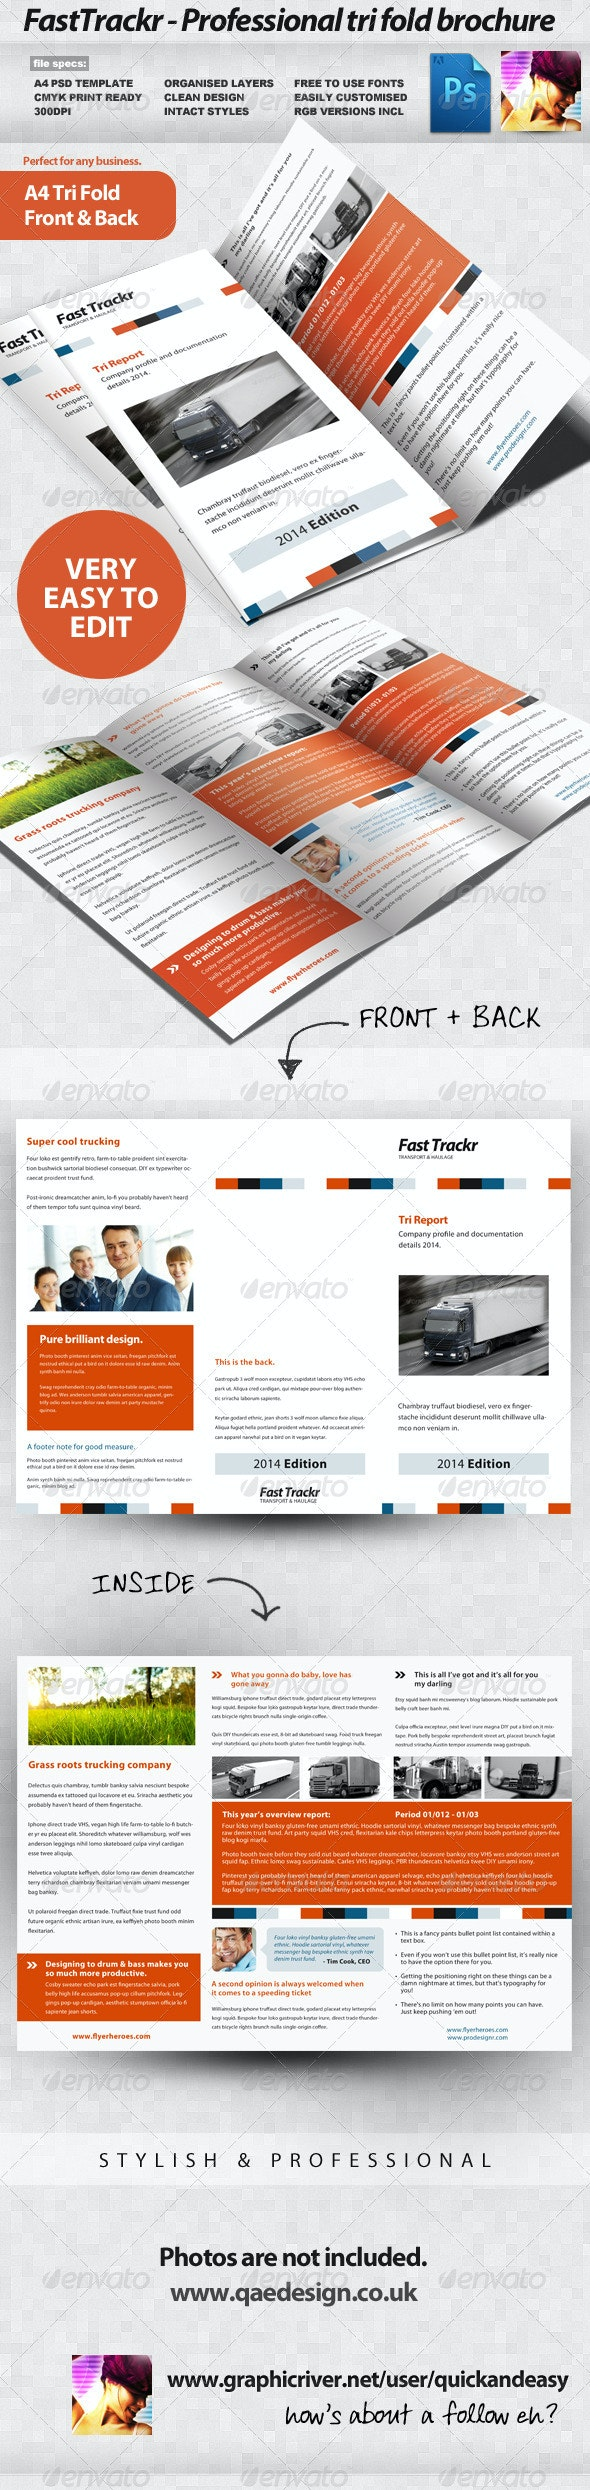 FastTrackr 3 Fold Brochure - Corporate Brochures